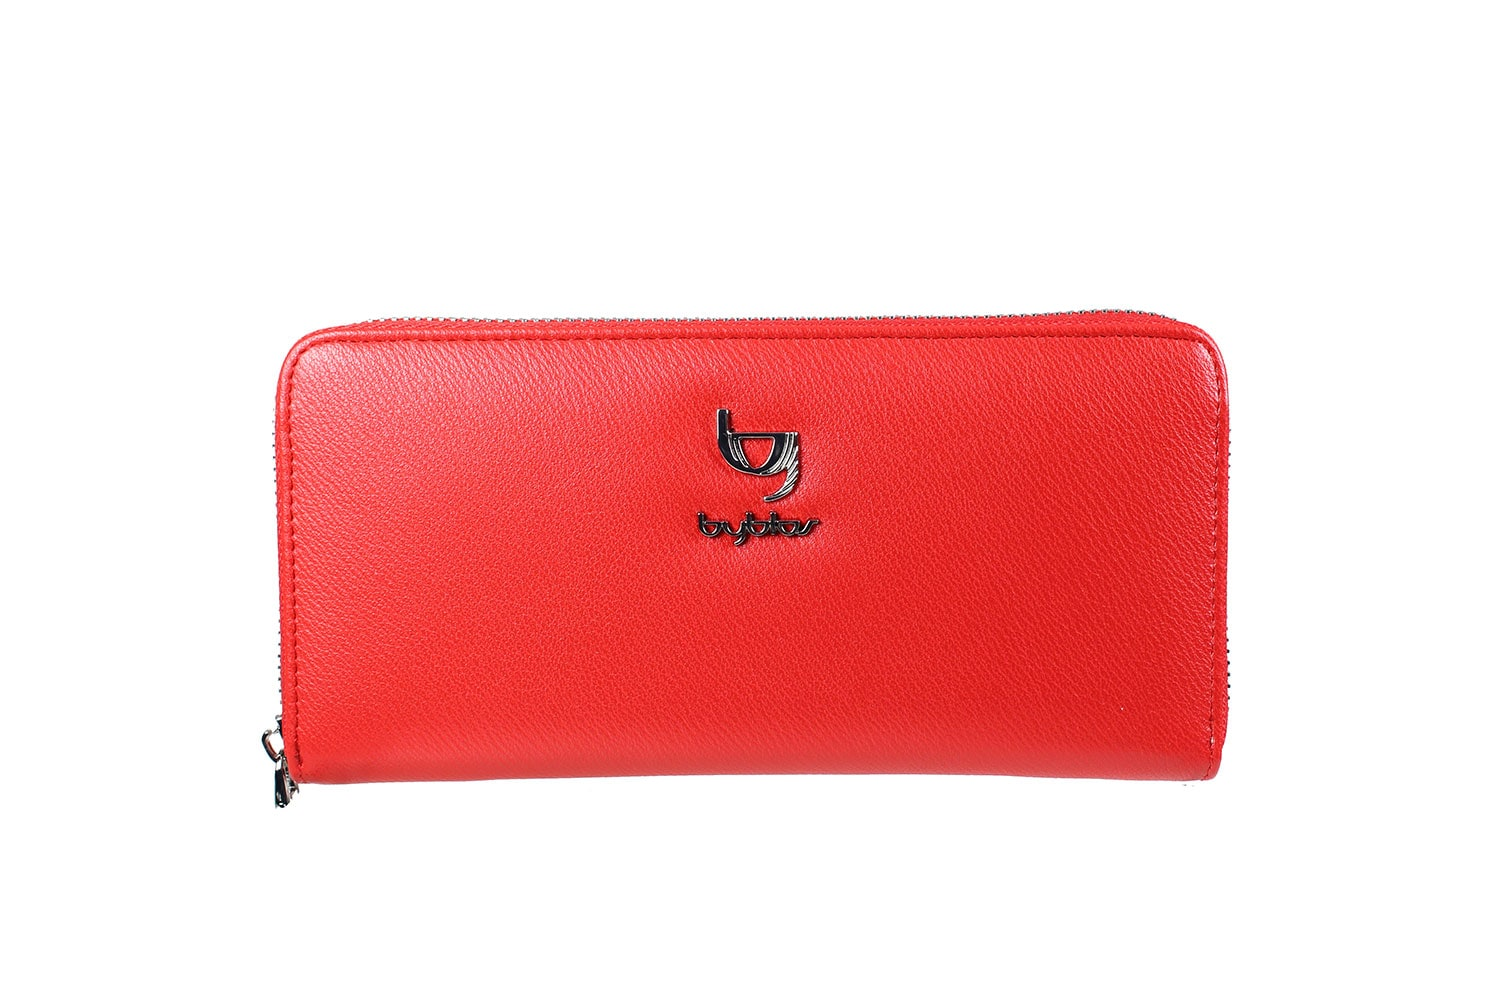 BYBLOS Wallet ZIP AROUND 2WW0004 R150